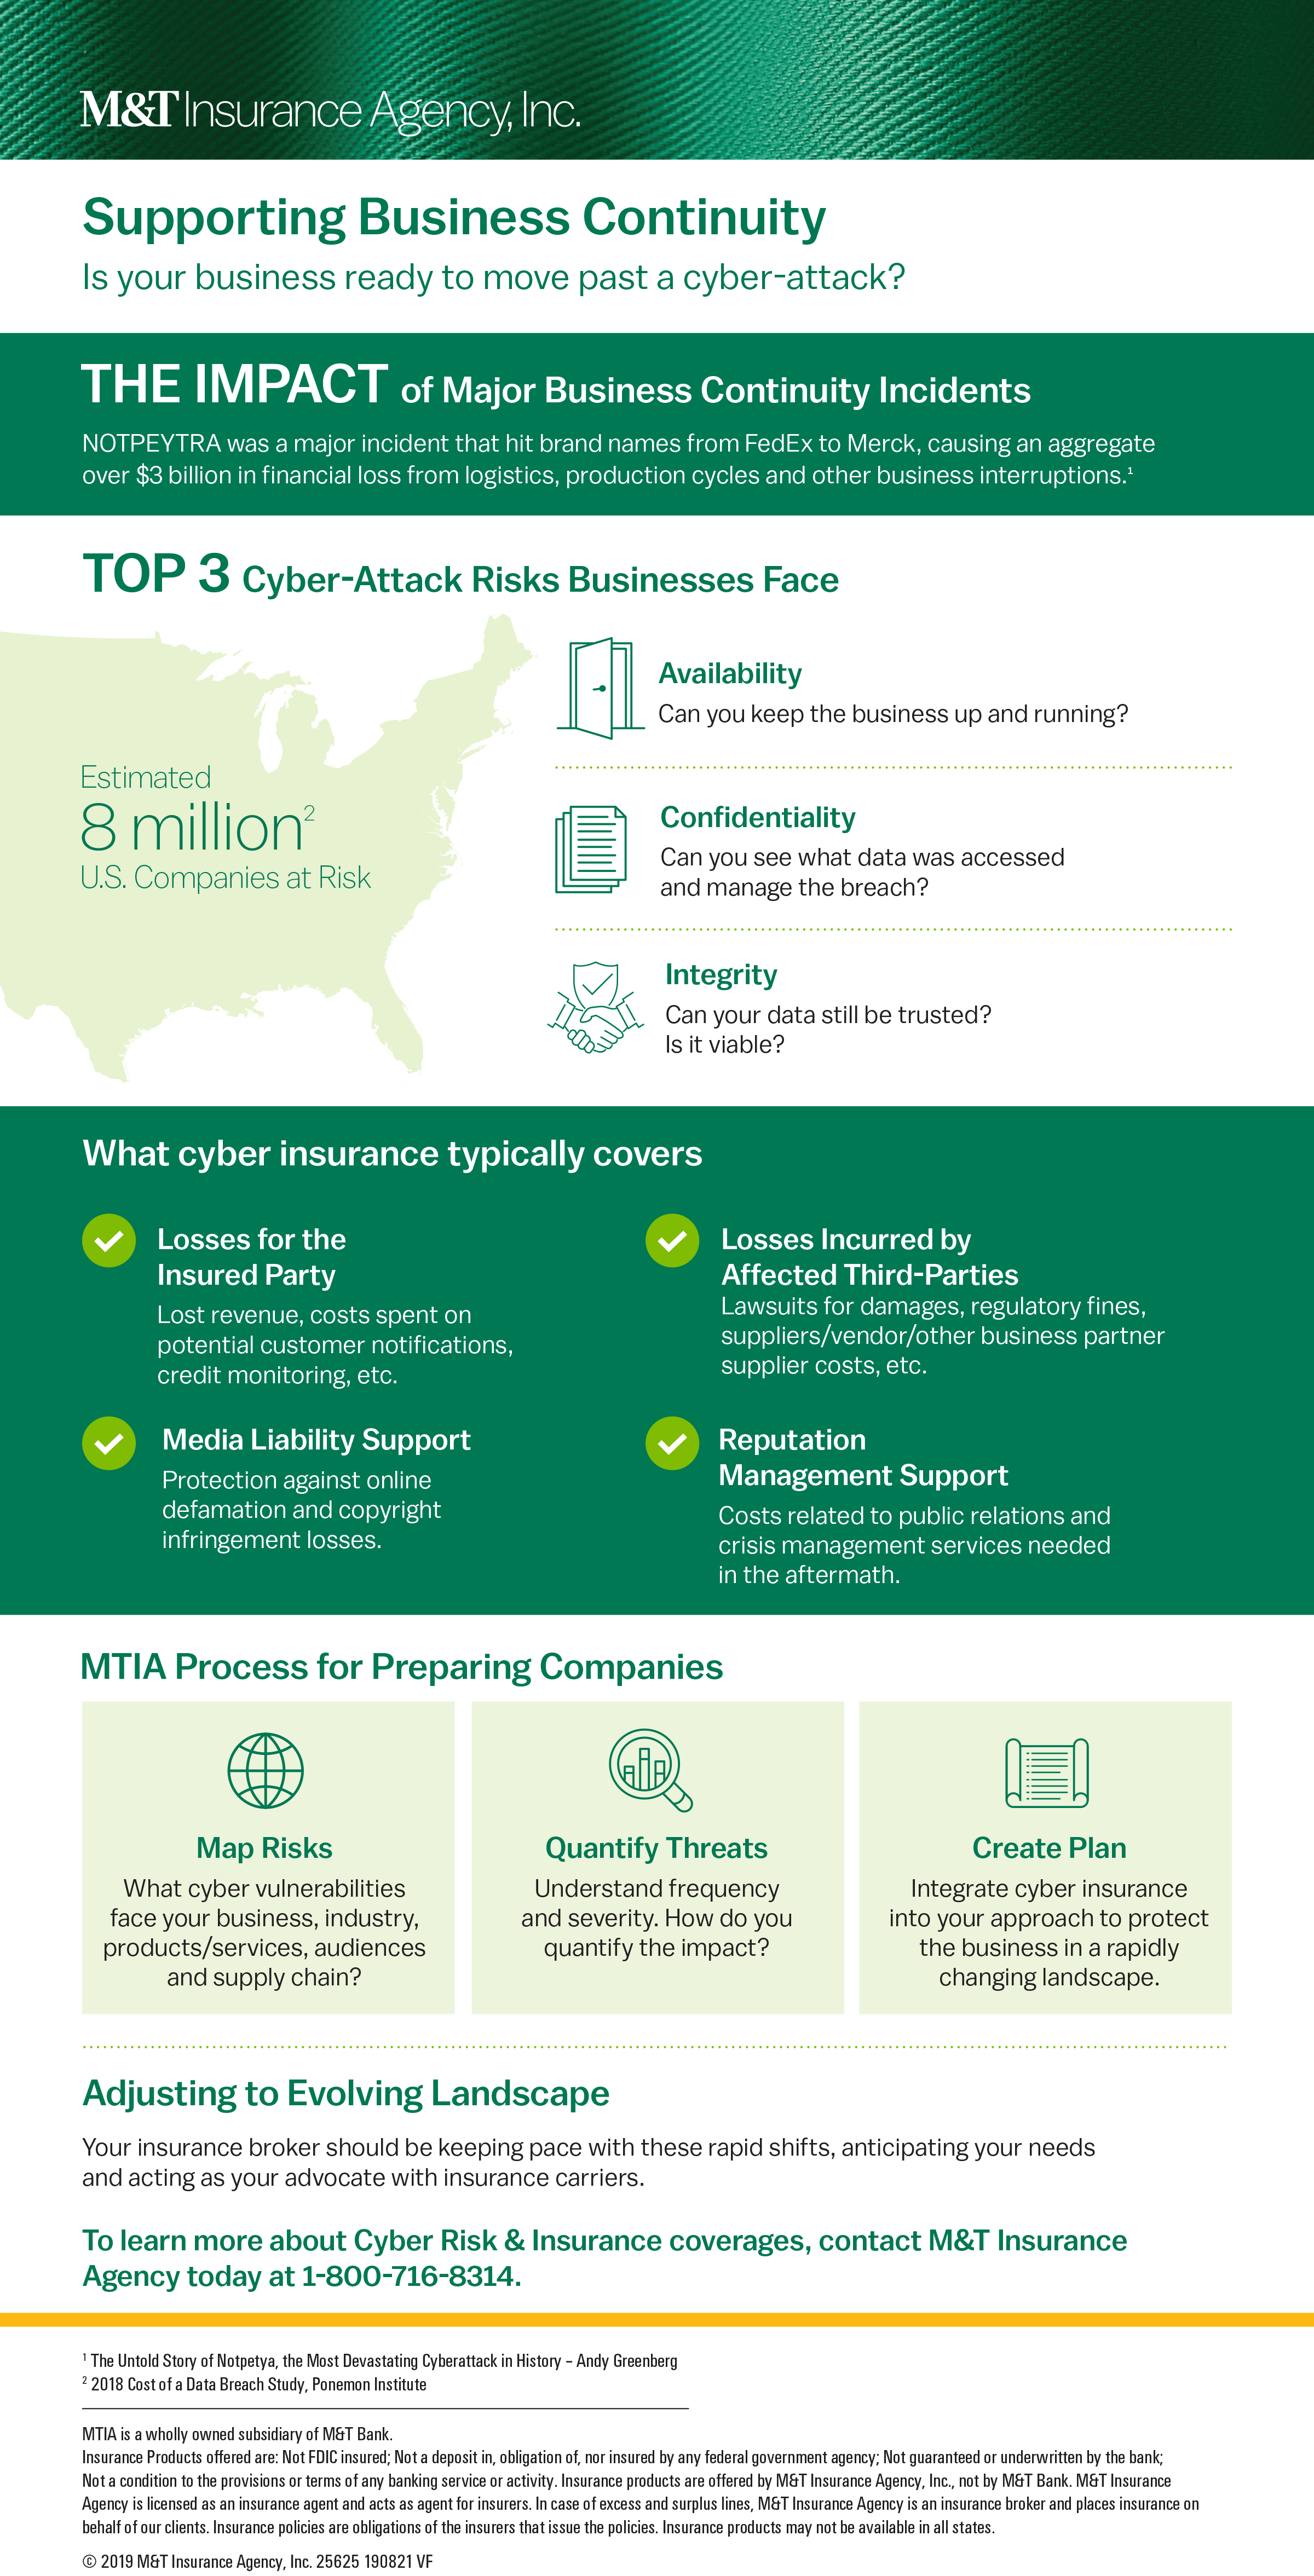 impact-of-major-business-continuity-incidents-infographics-2.png